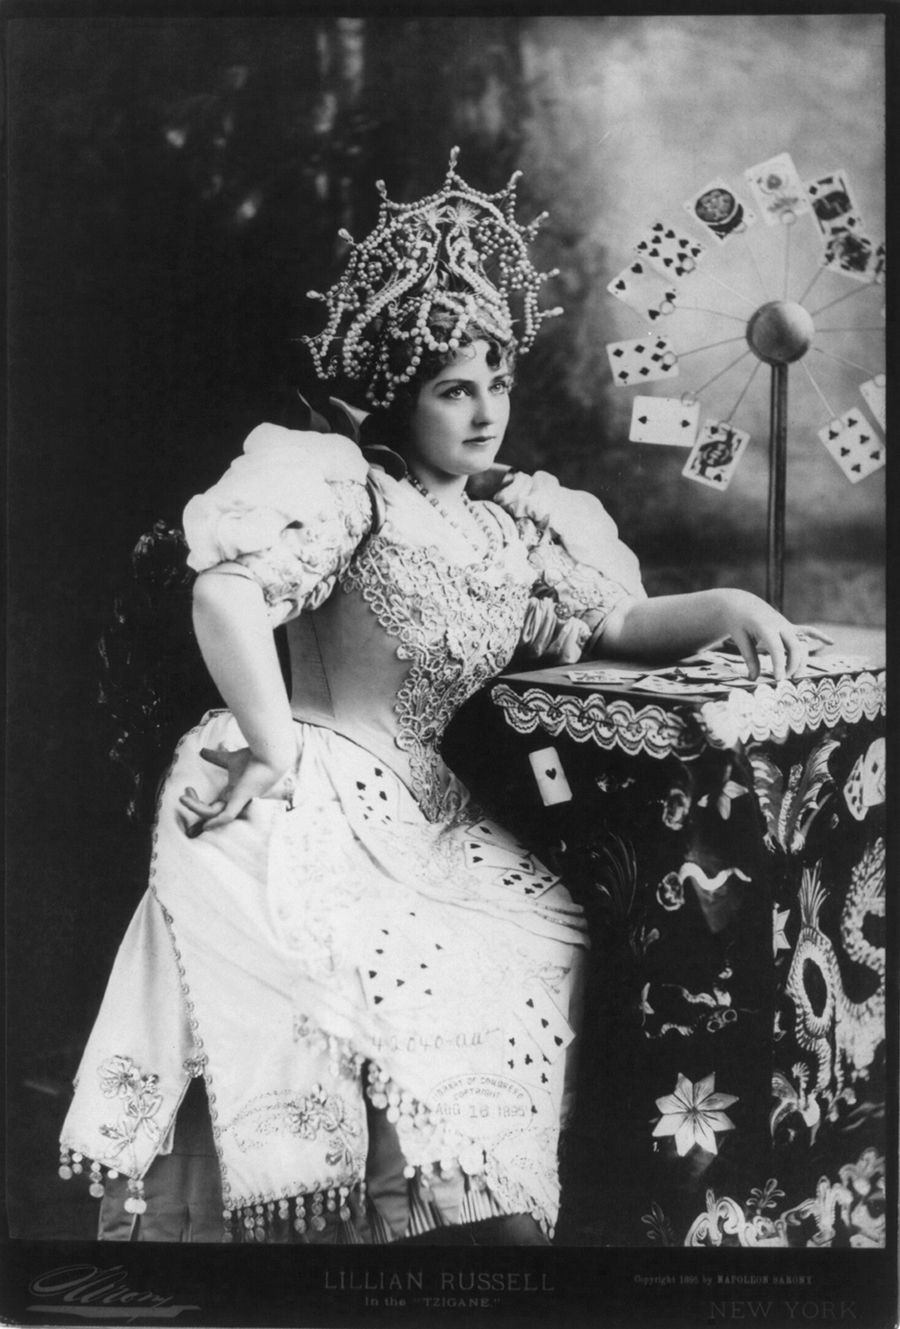 Lillian Russell Lillian Russell new images